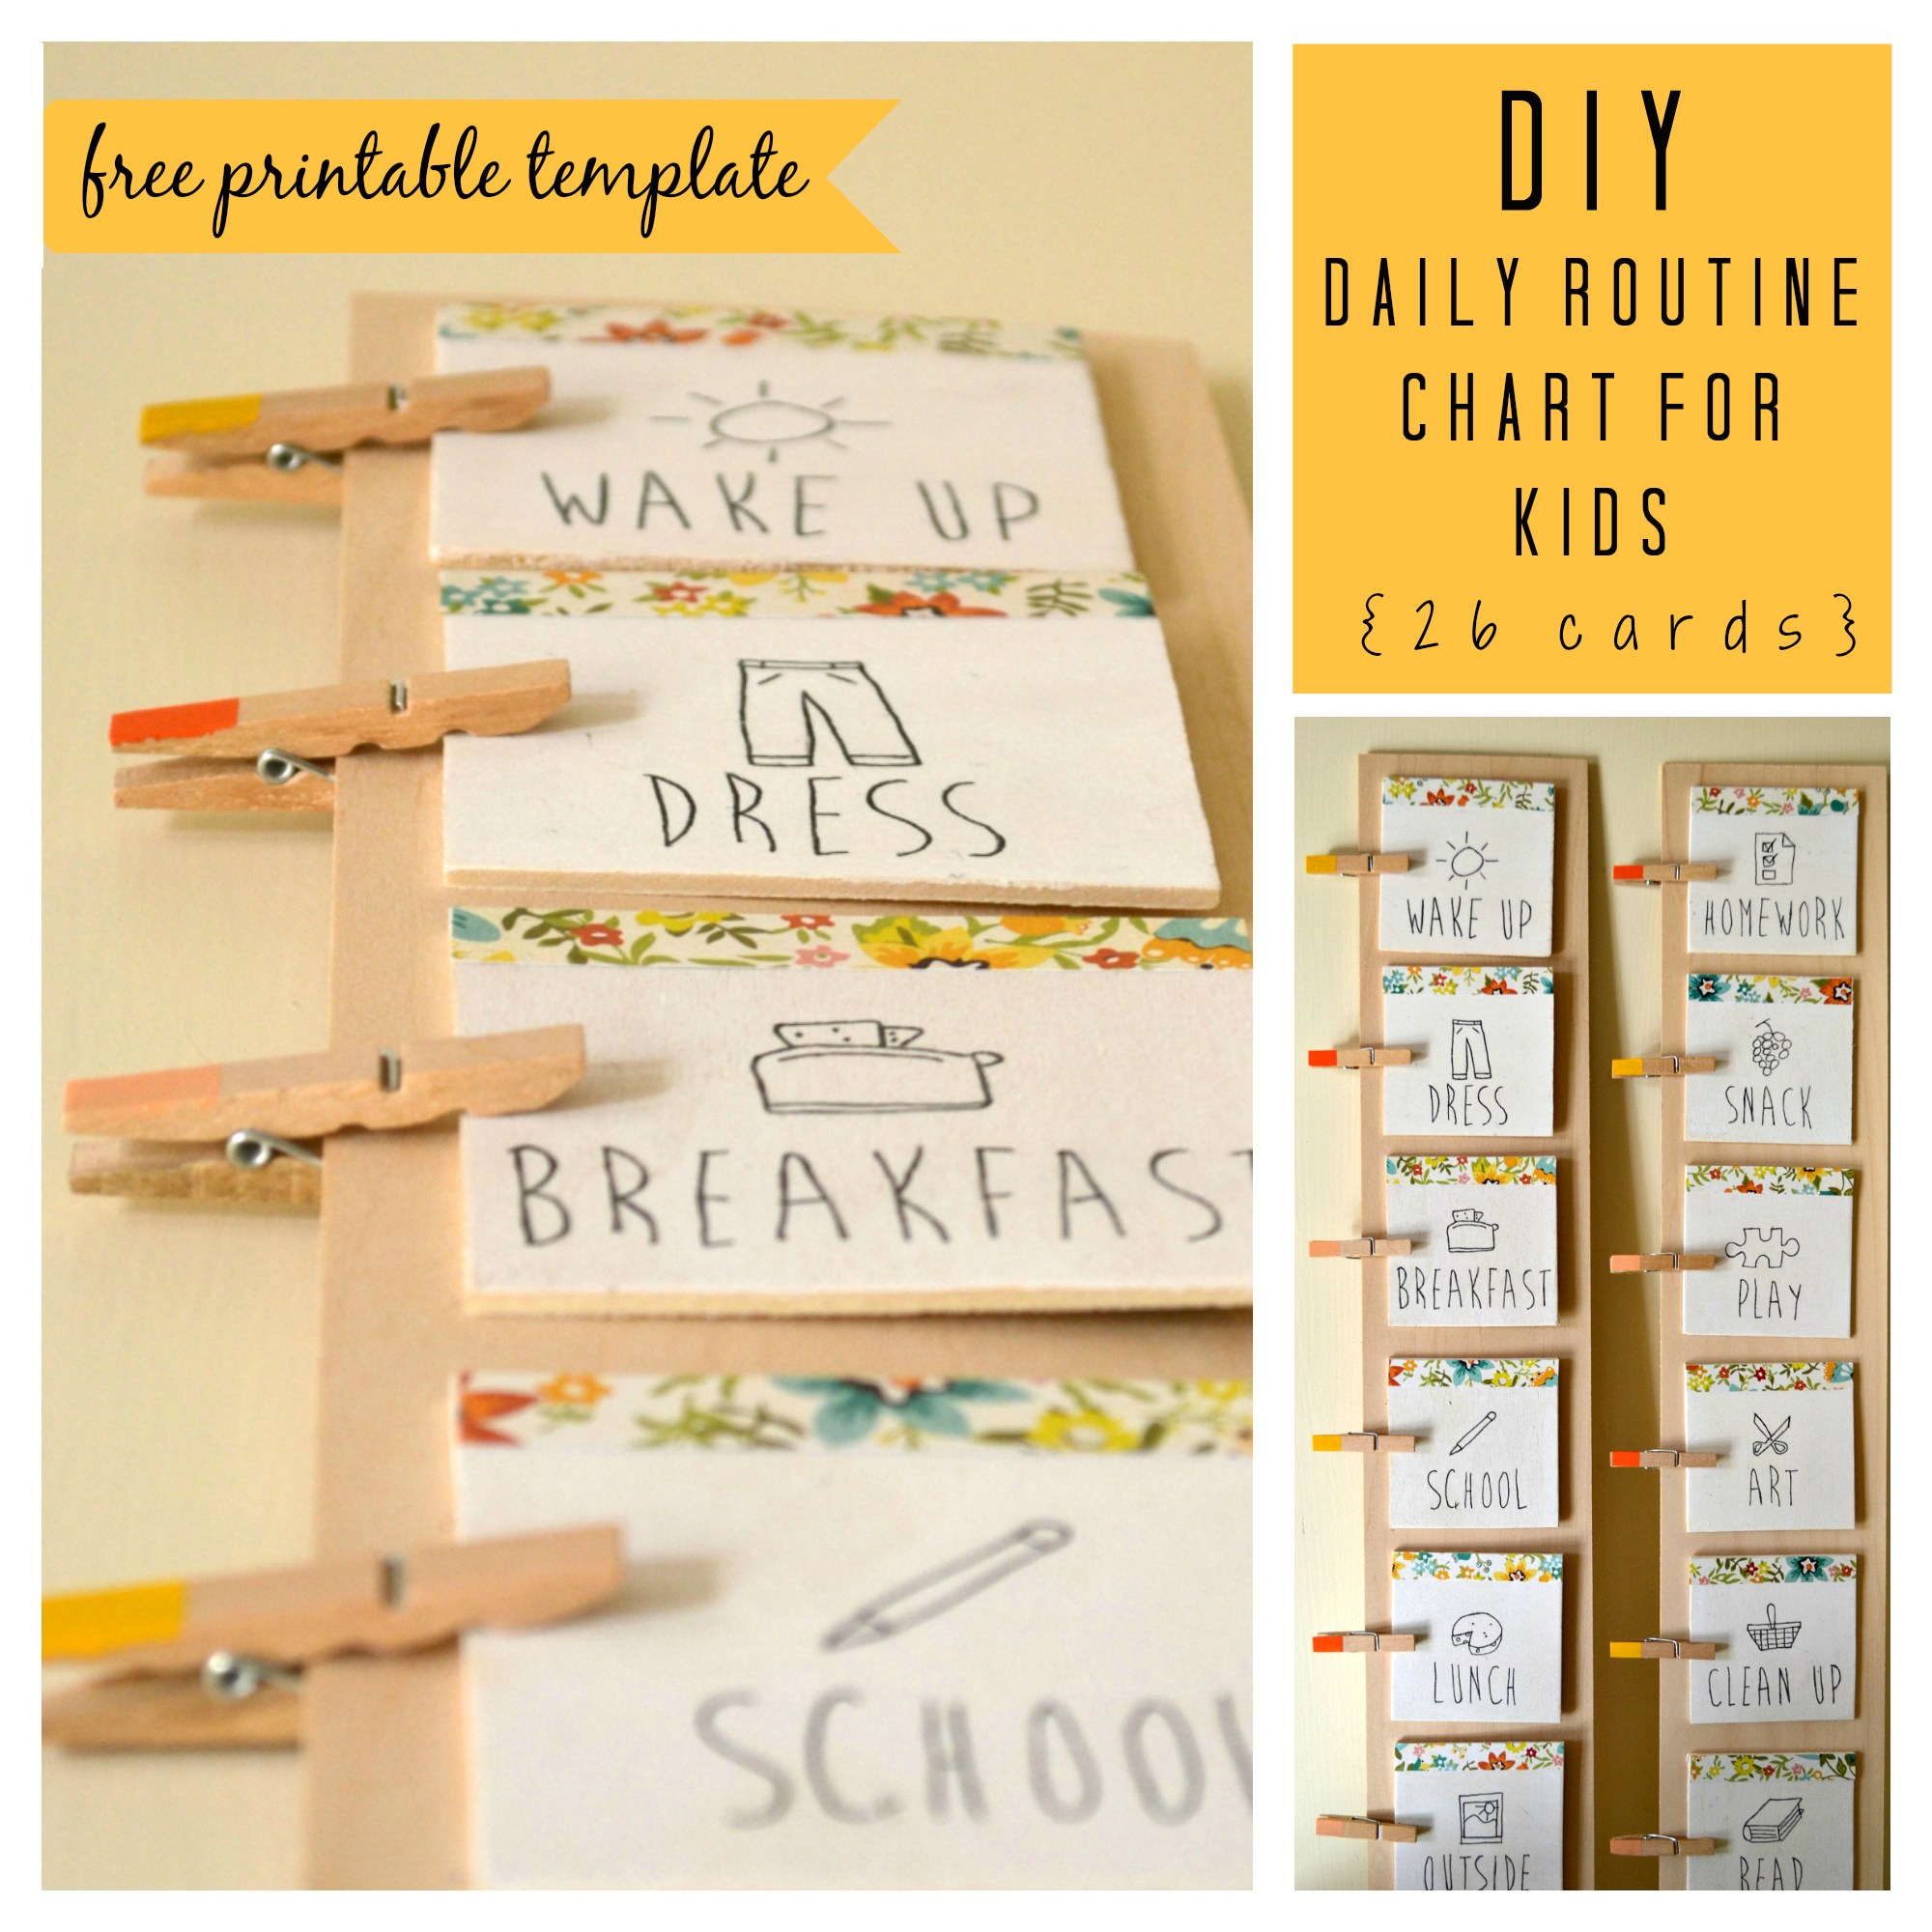 DIY Daily Routine Chart With Free Printable Template  Daily Routine Chart Template